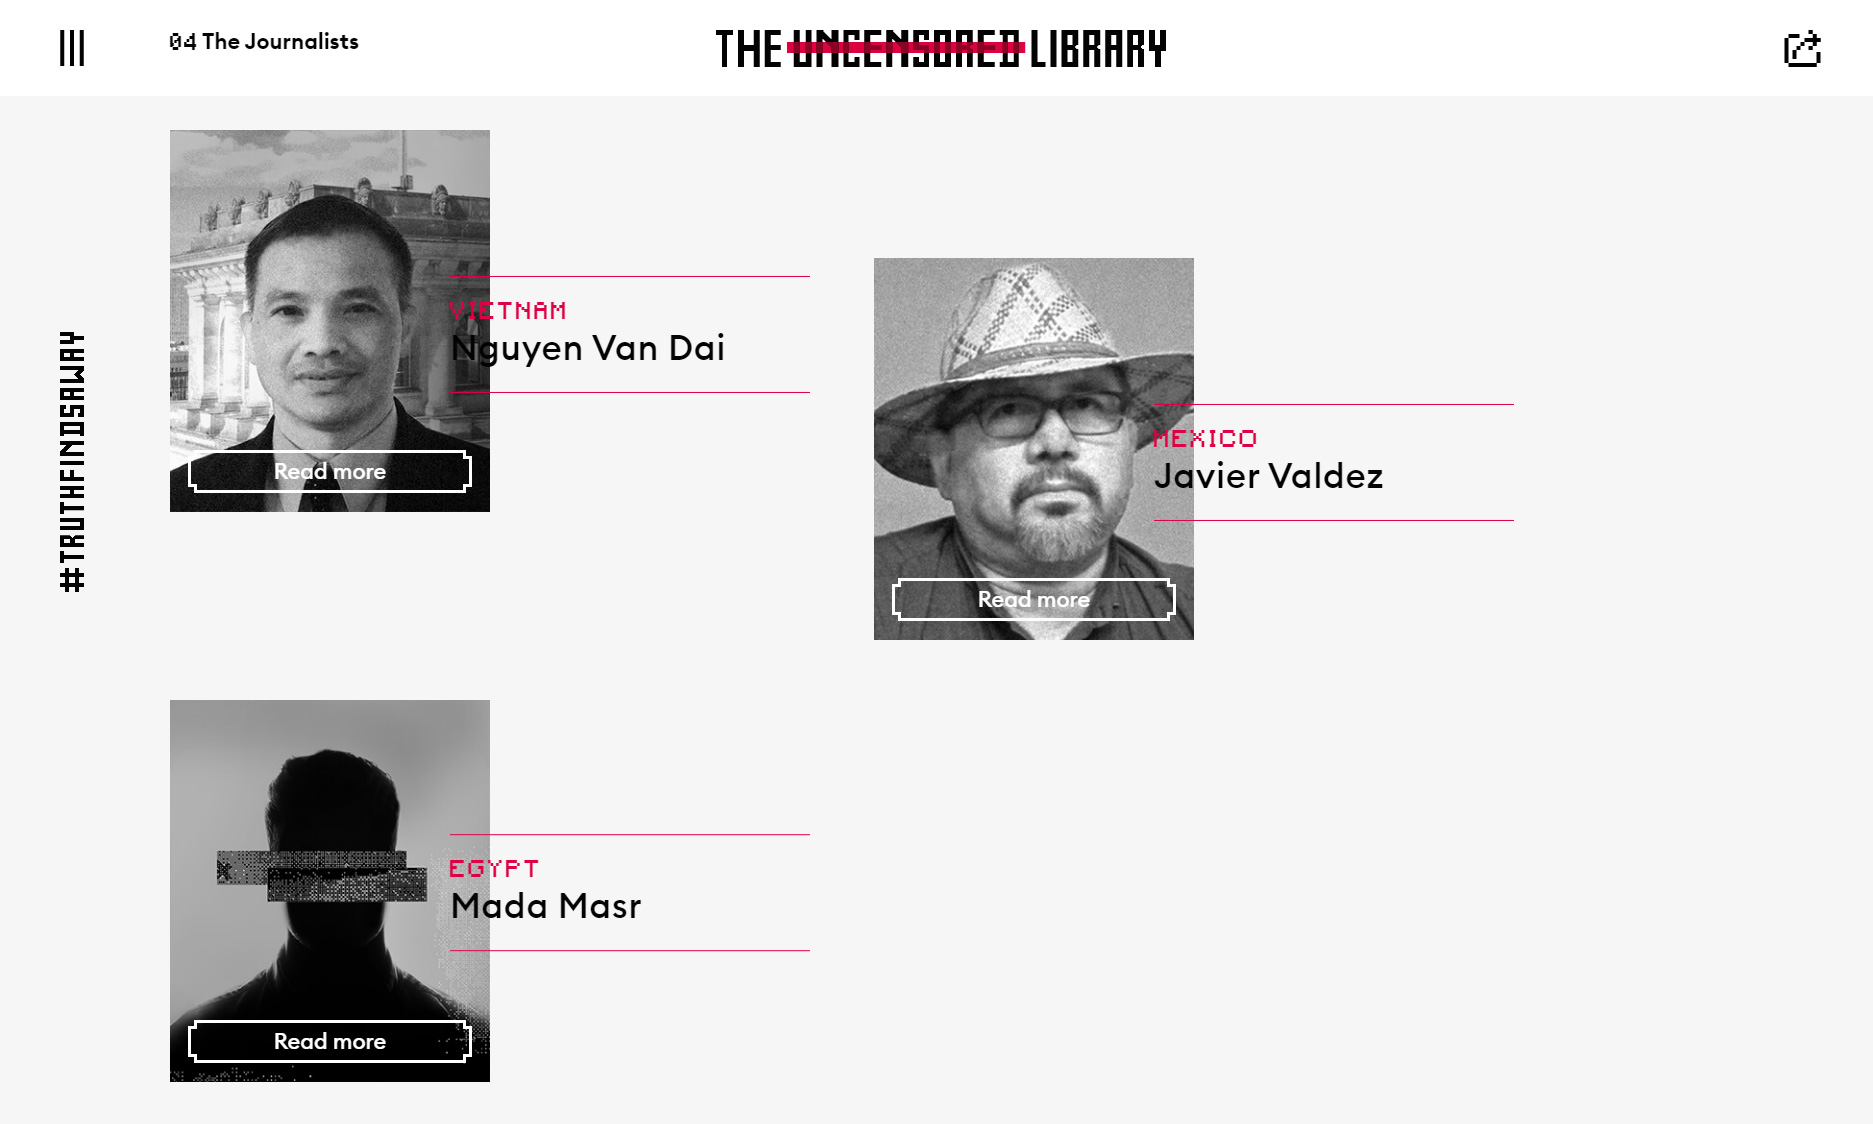 The Uncensored Library - Website of the Day